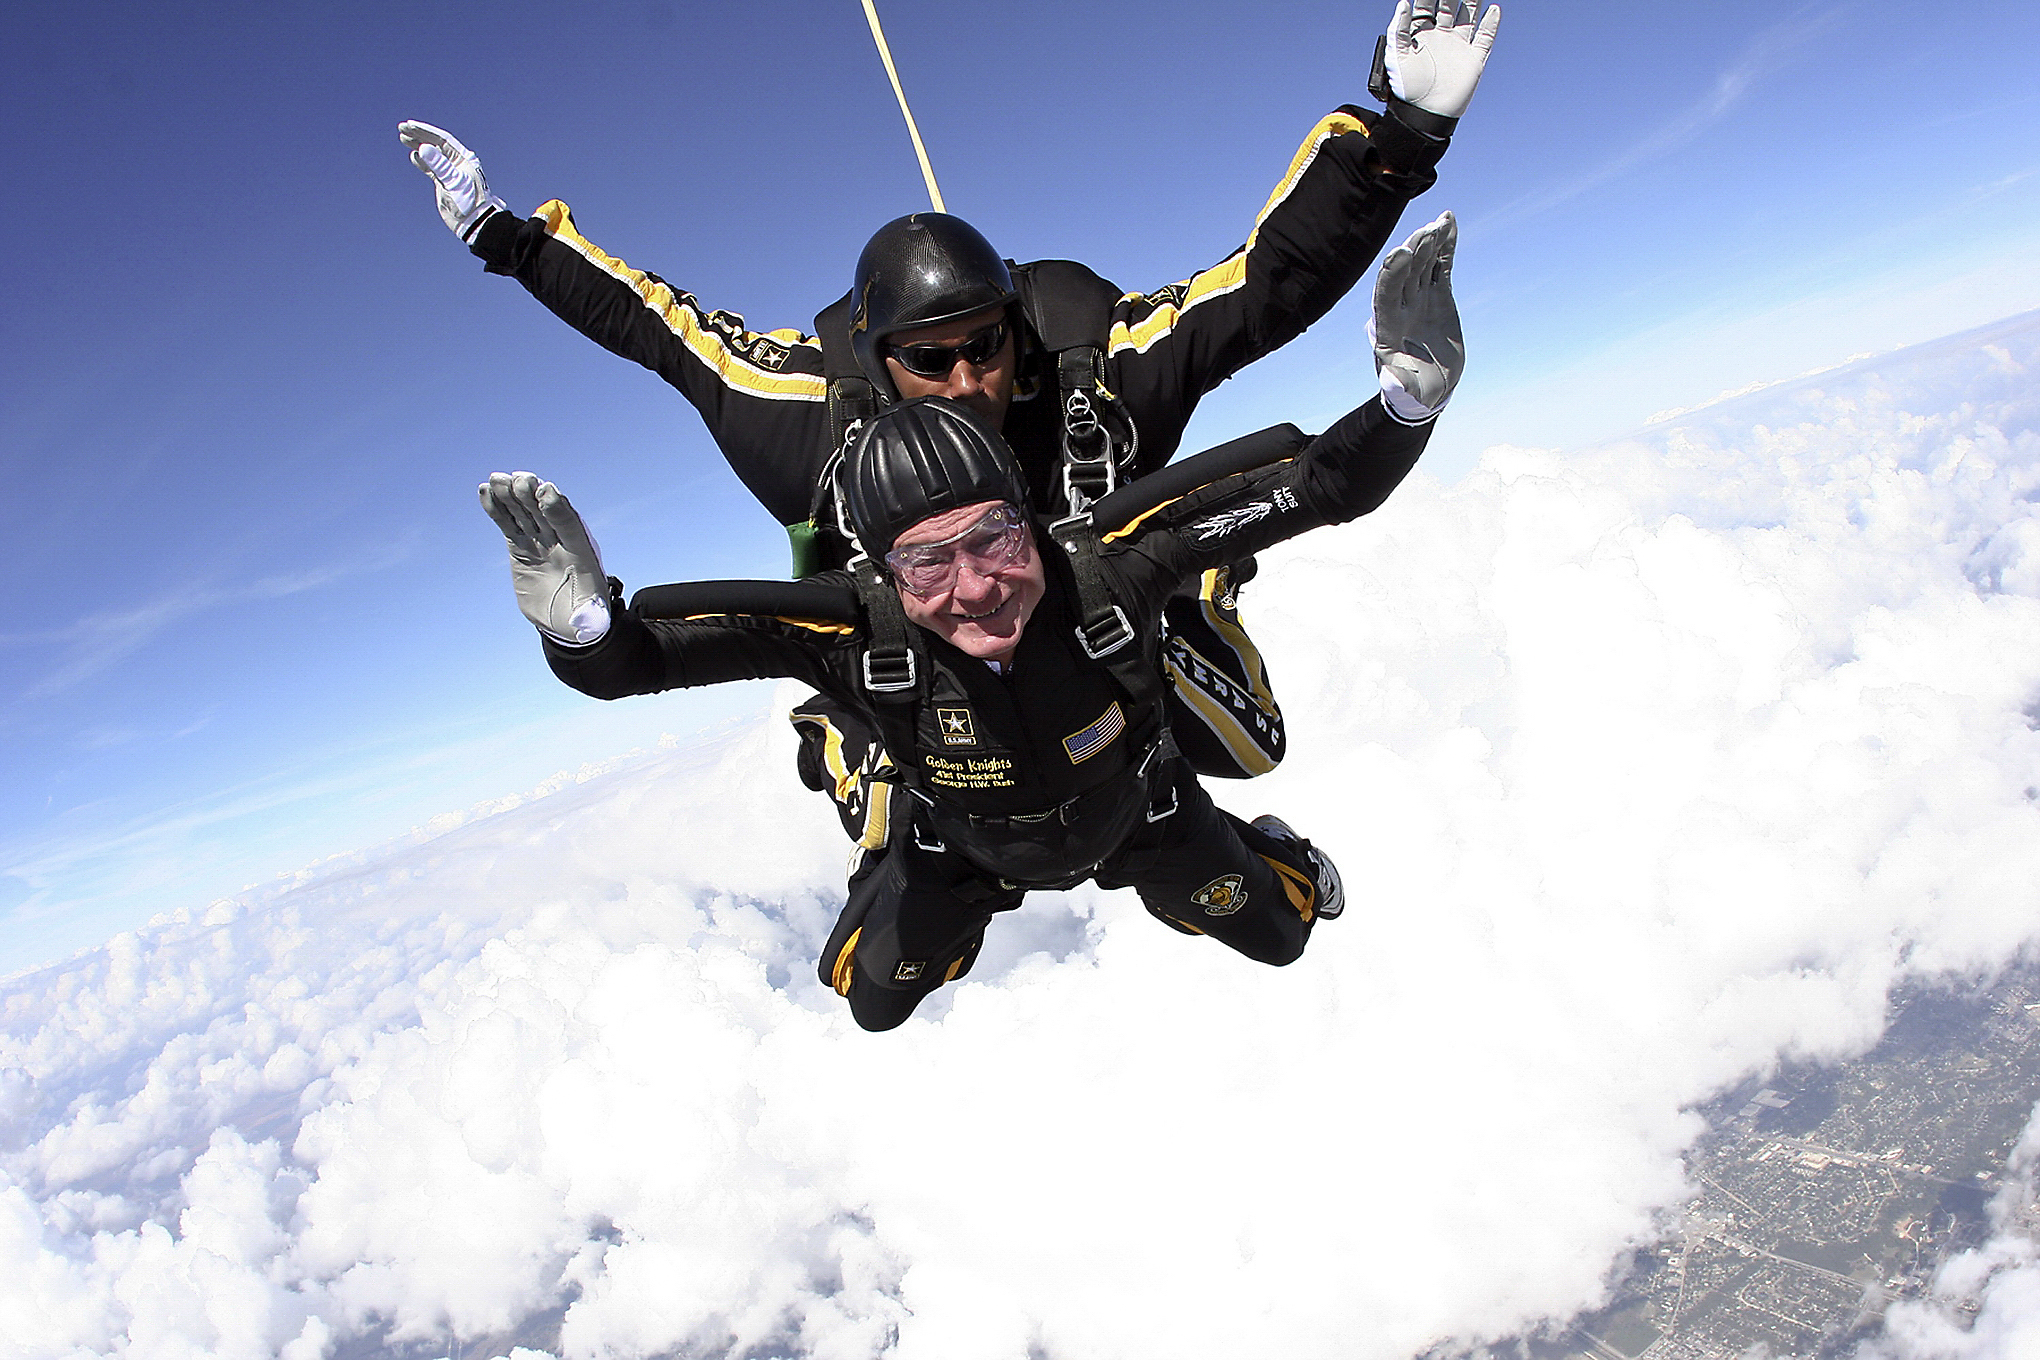 bush599 Former President George H.W. Bush is shown skydiving in his 80s.